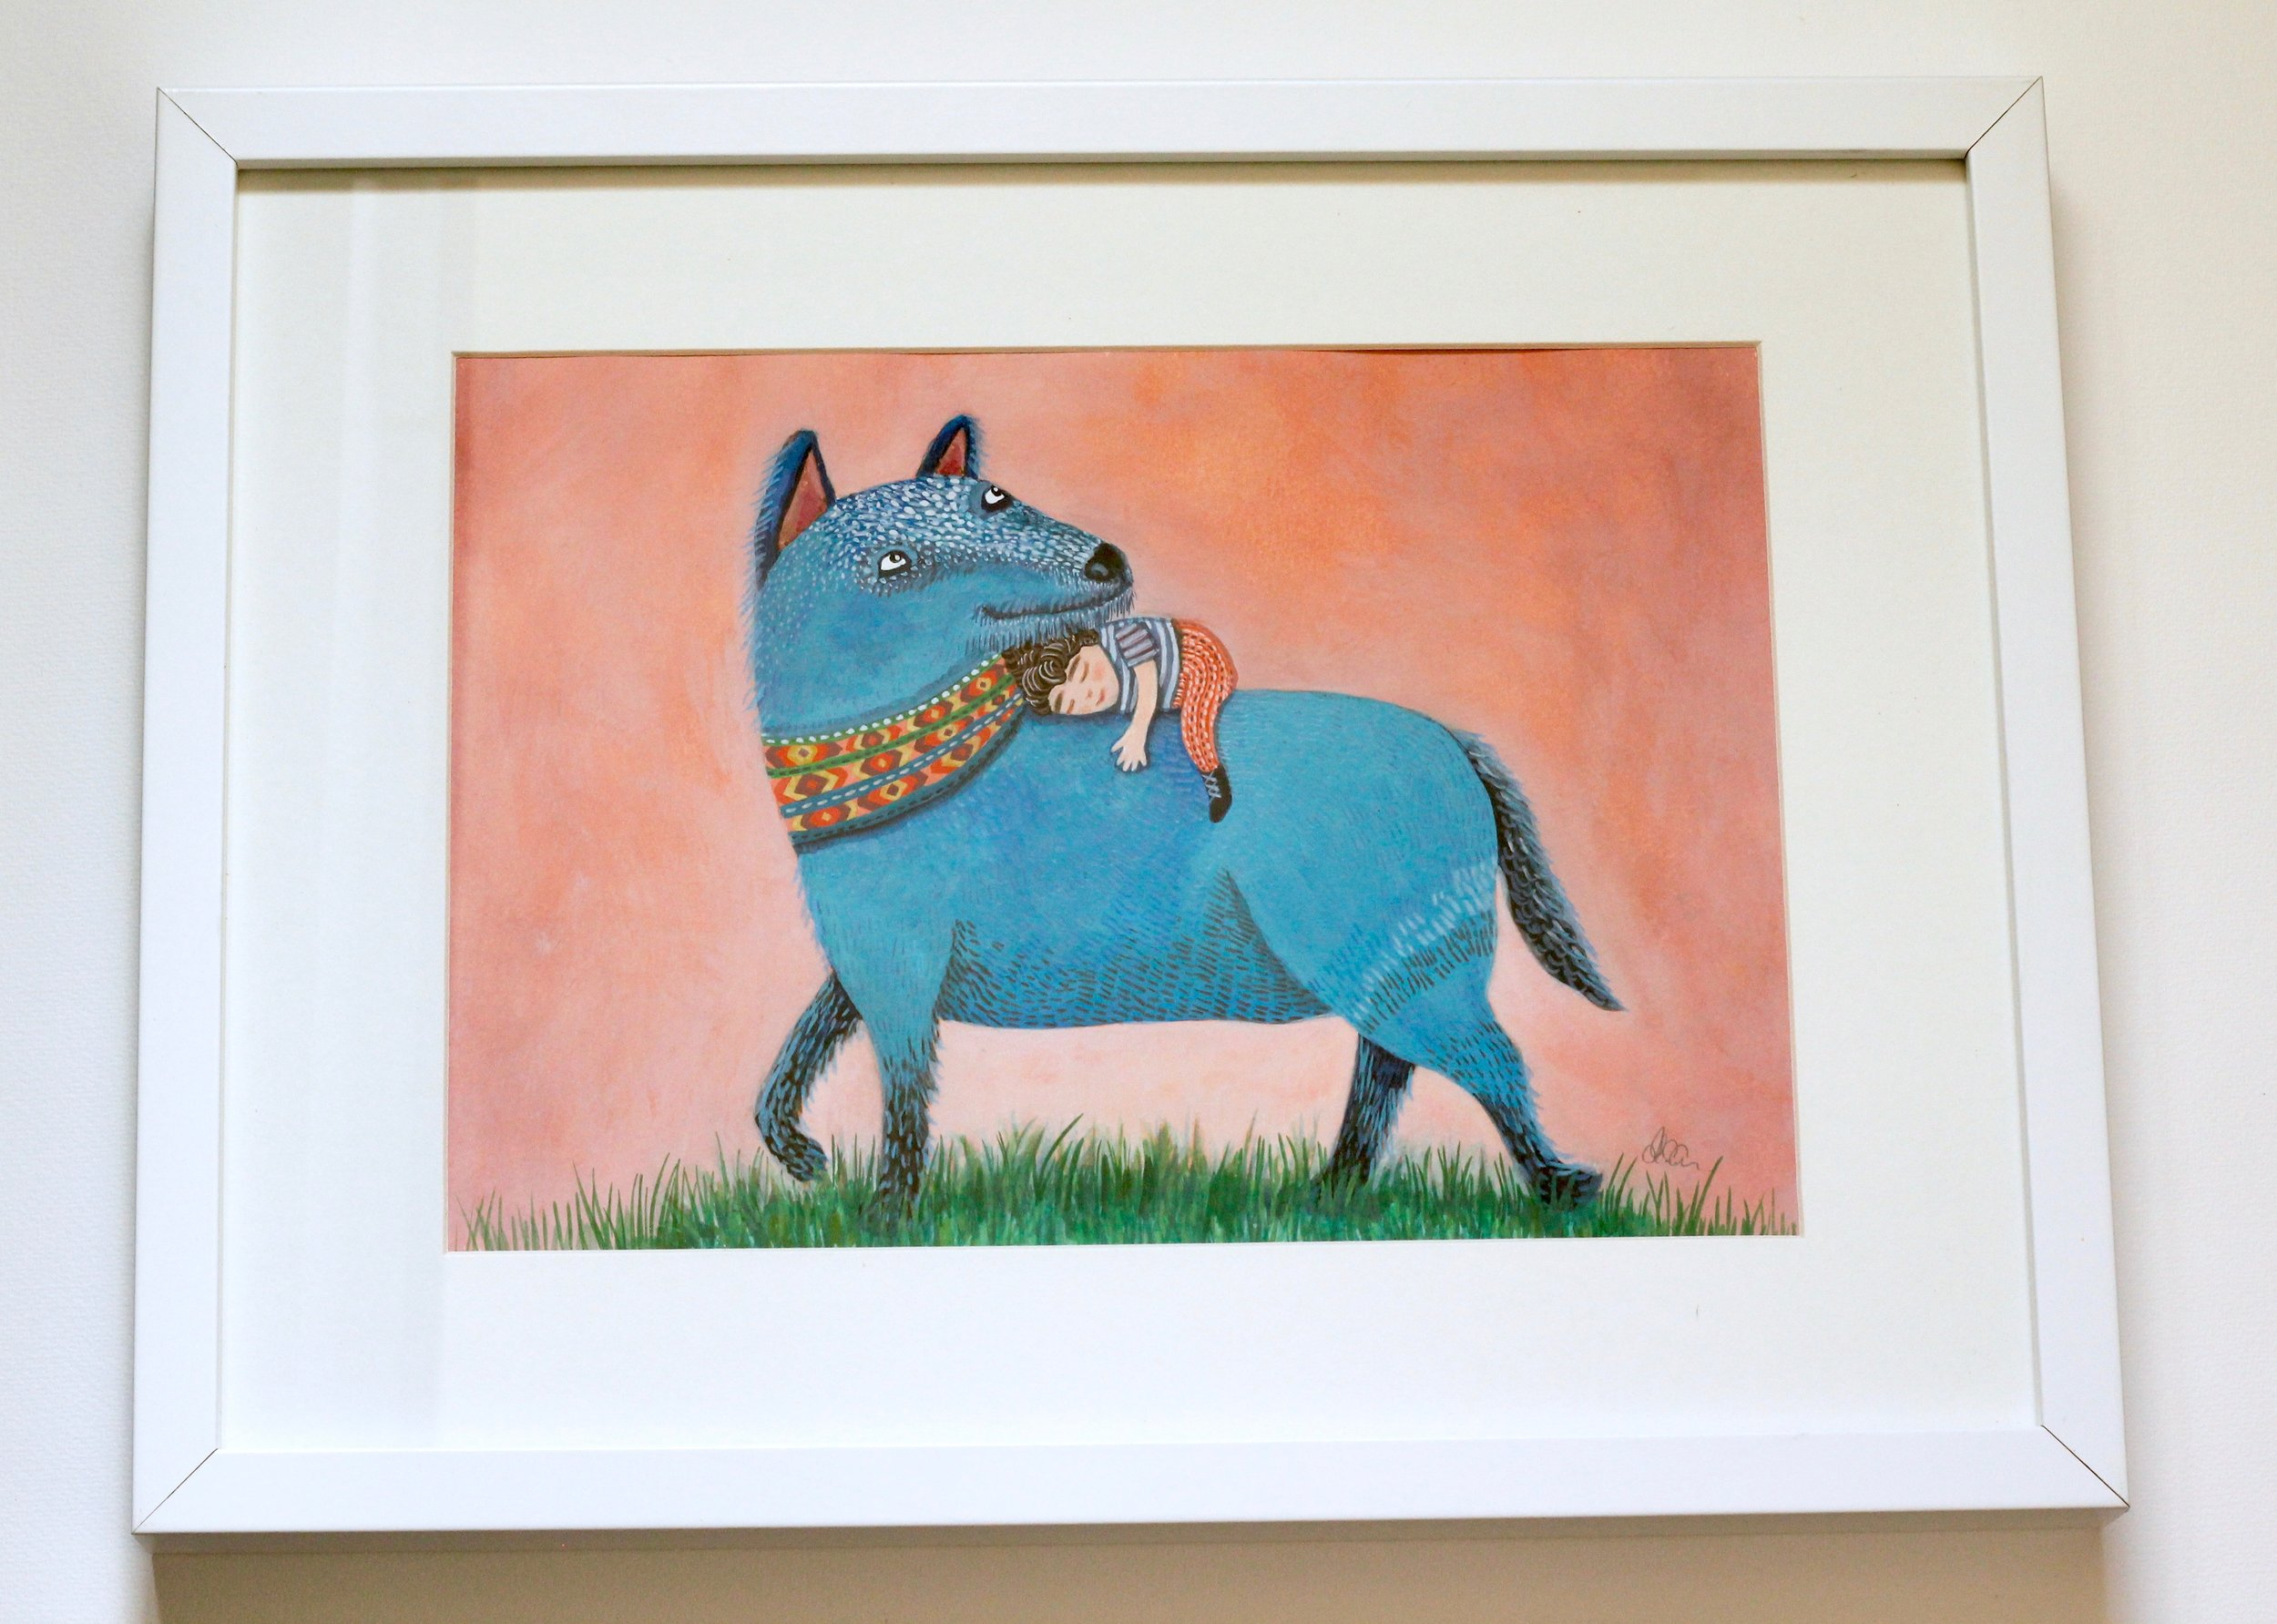 Blue Dog - 20x30cm gouache and pencil on paper €120SOLD